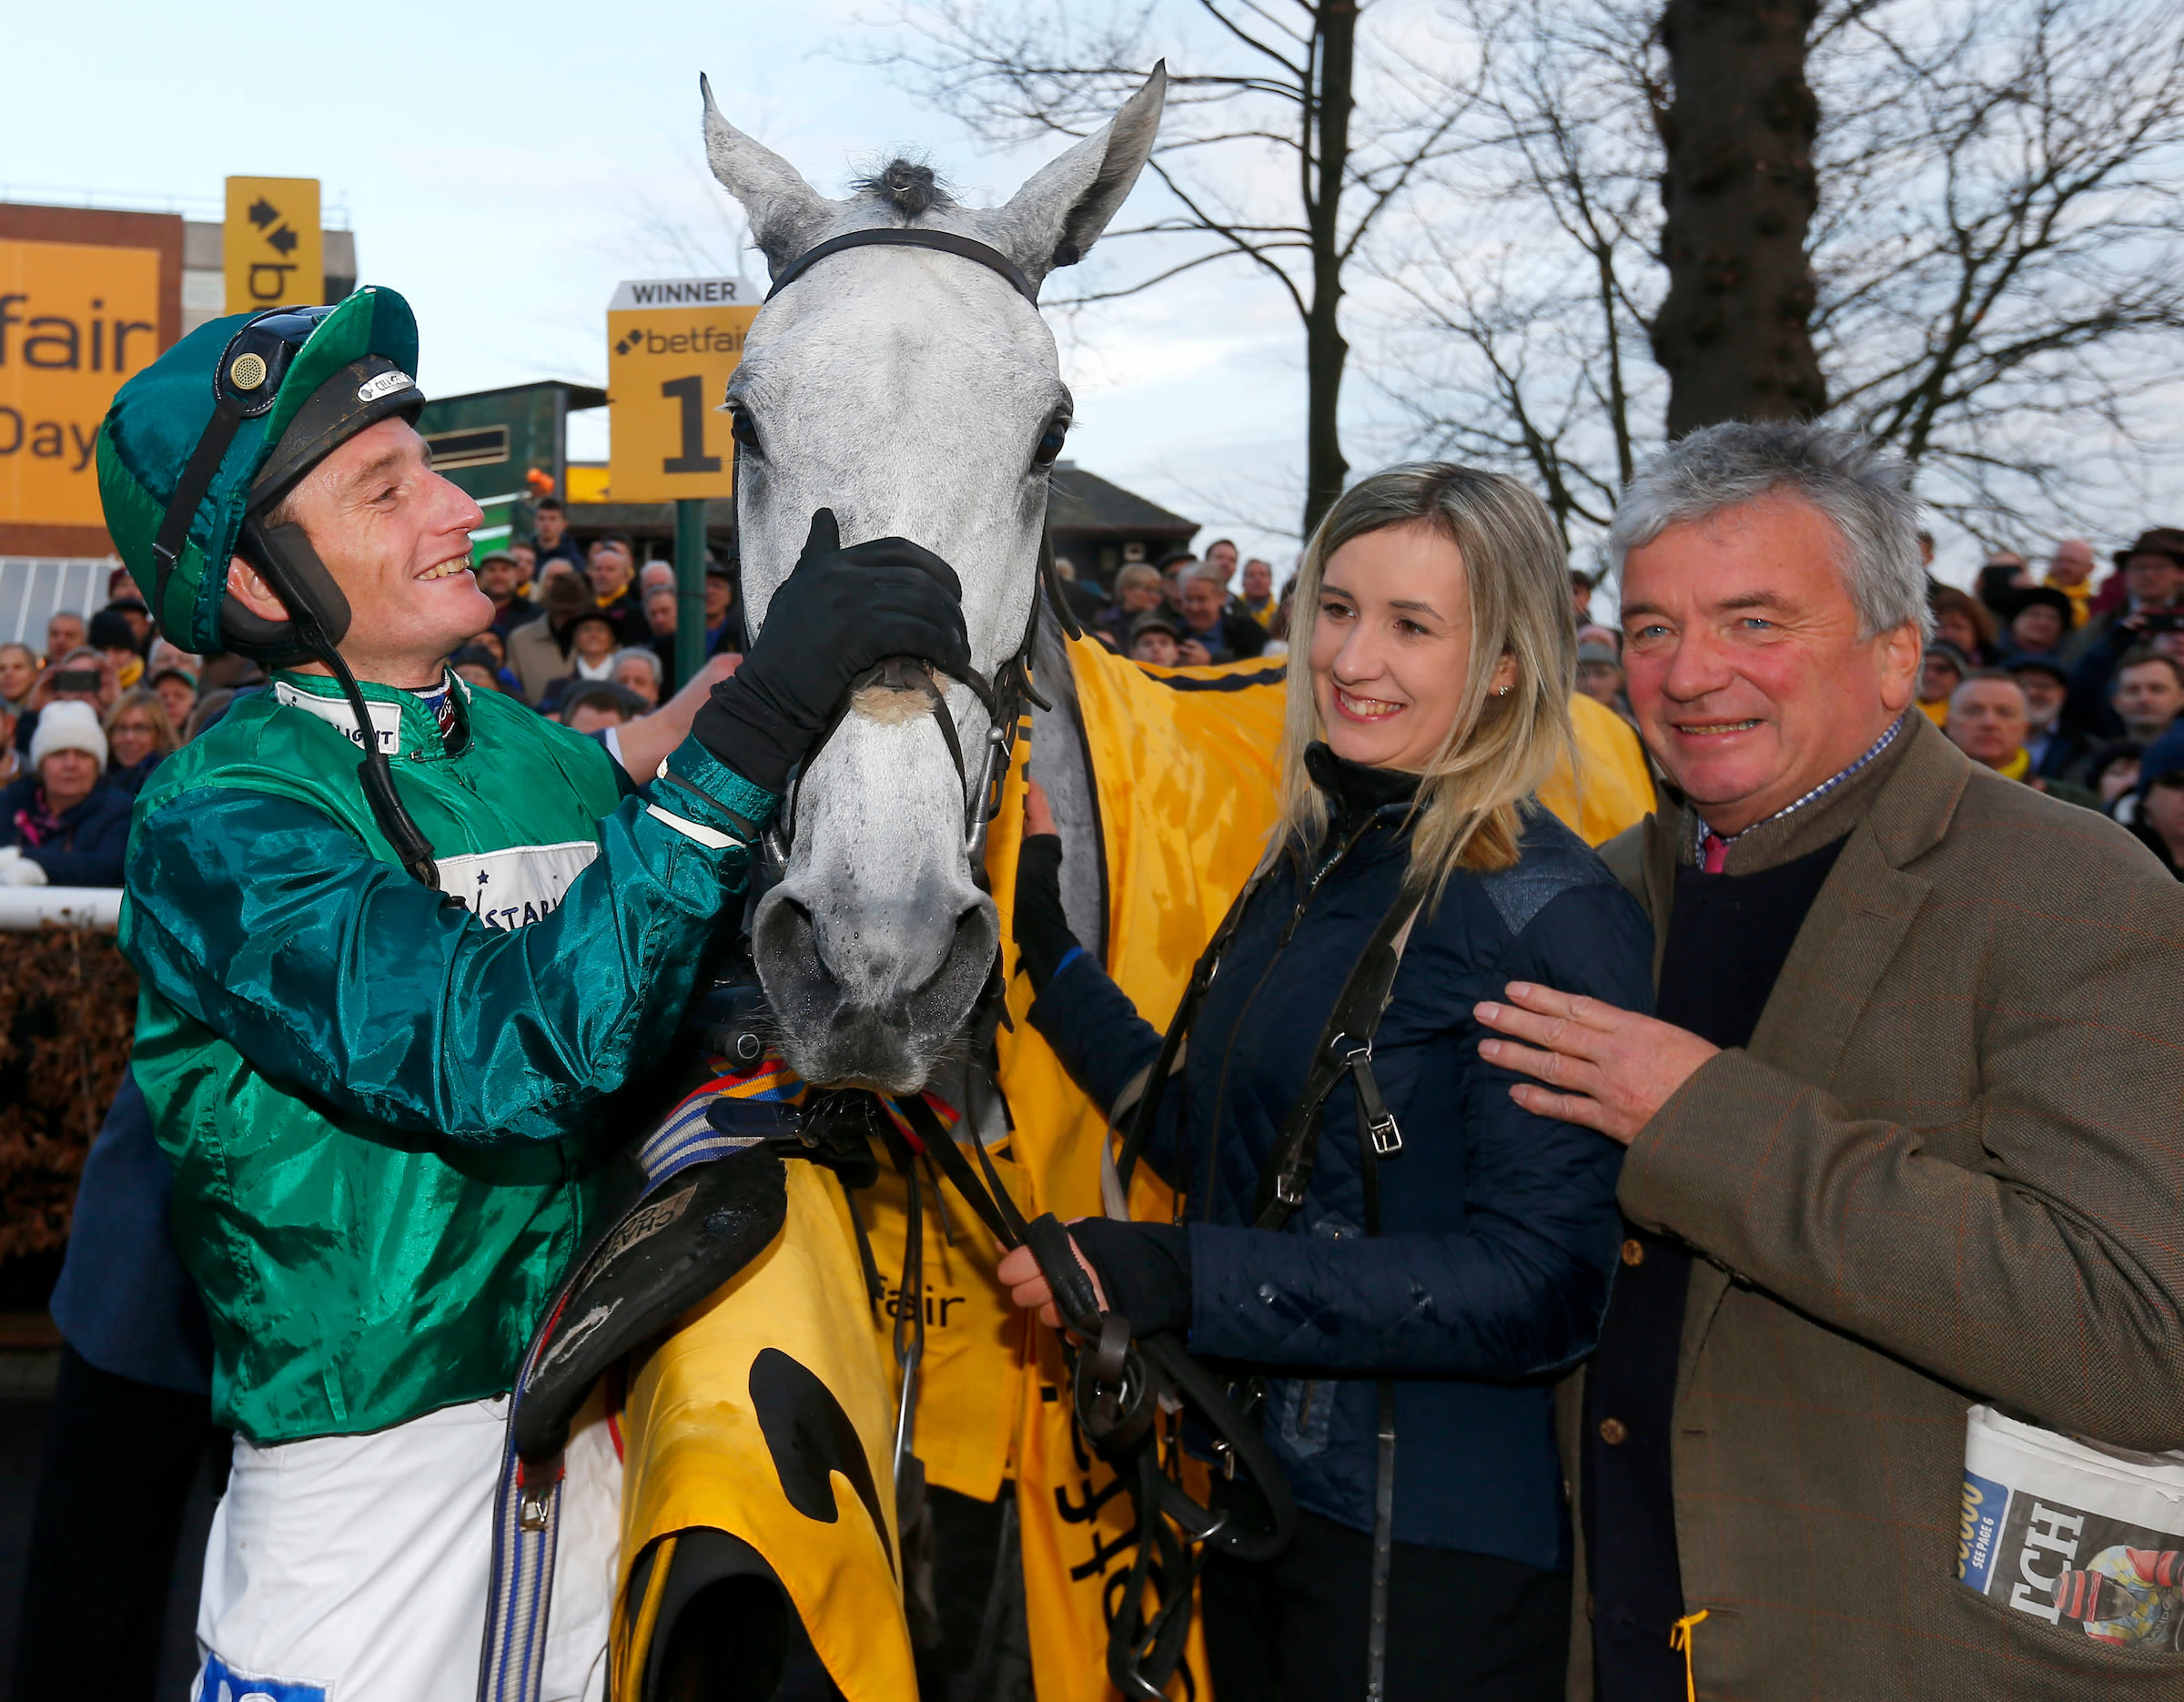 Bristol de Mai after yet more Betfair Chase glory for Jacob, trainer Nigel Twiston-Davies and owners Simon Munir and Isaac Souede (Photo: Focusonracing)